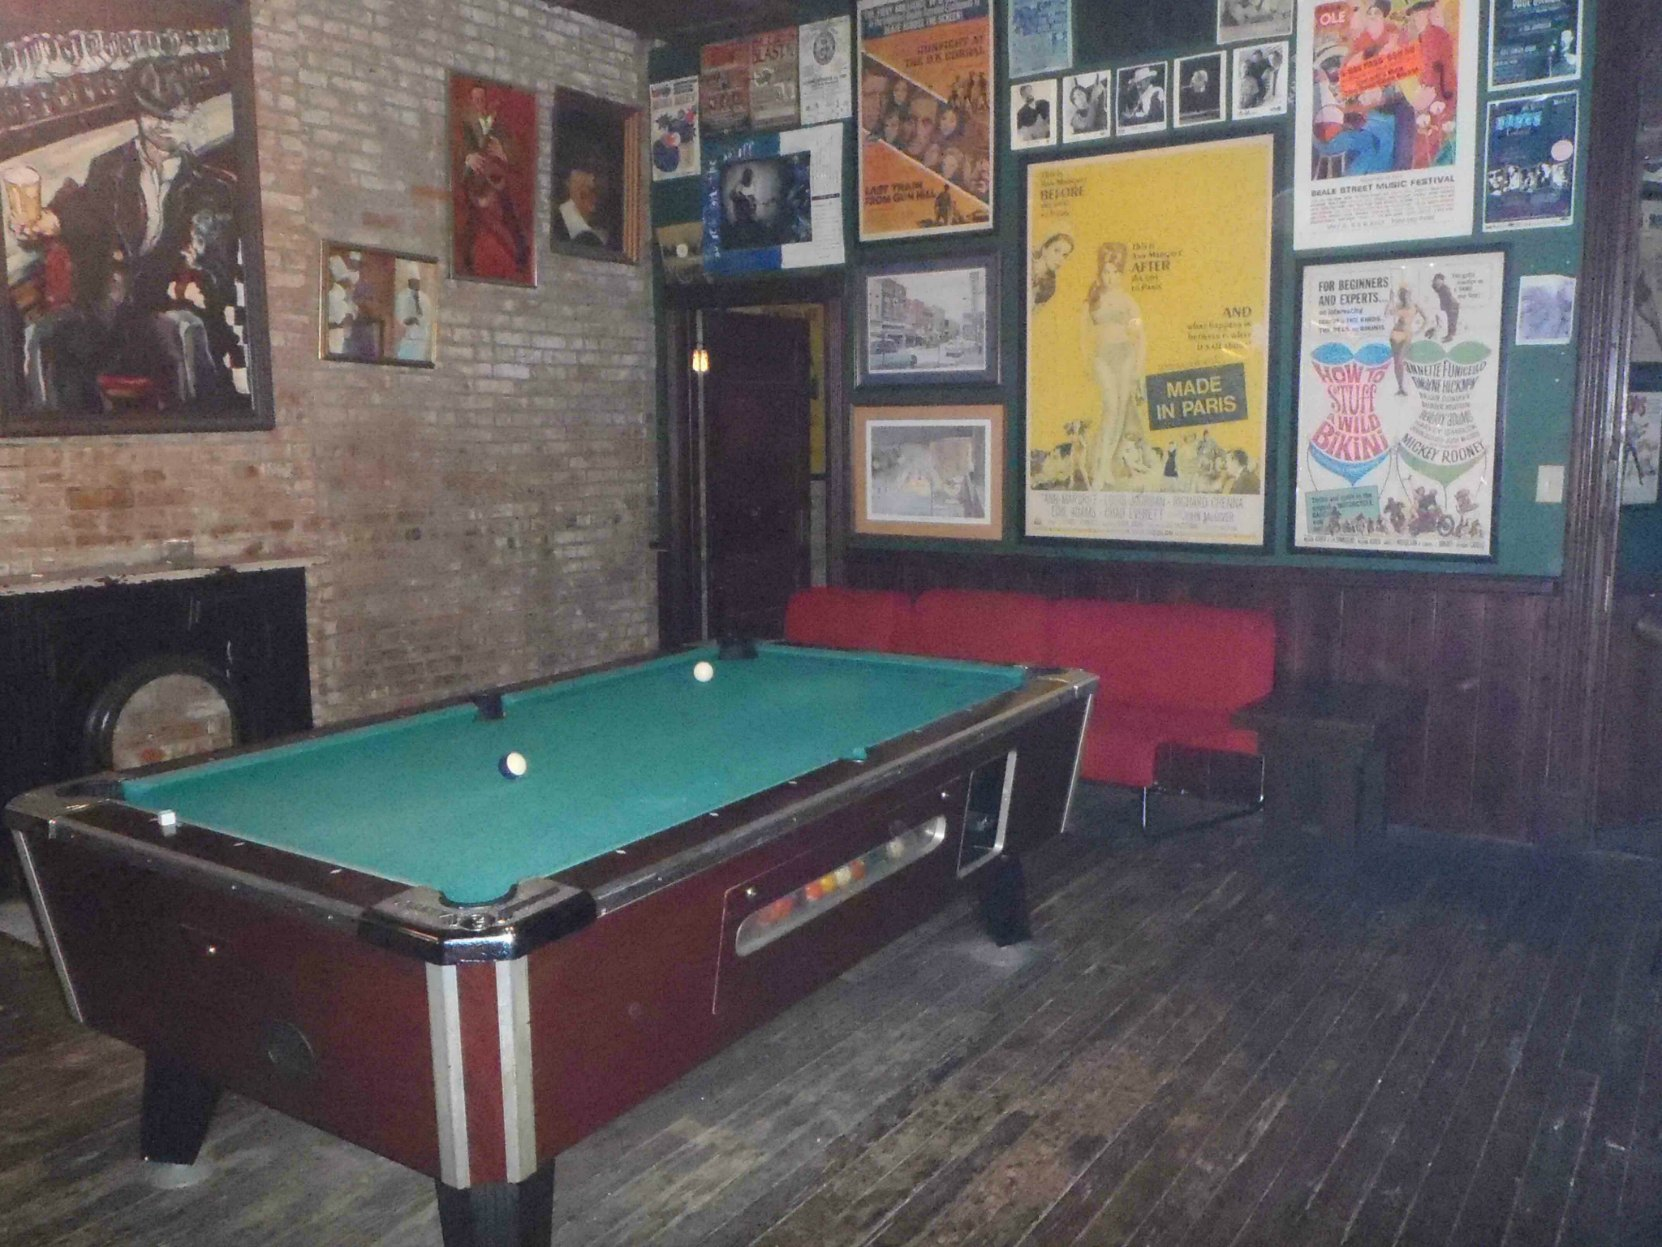 The former Hooks Brothers Photography Studio is now a pool hall. We think this was once a Hooks Brothers studio room.